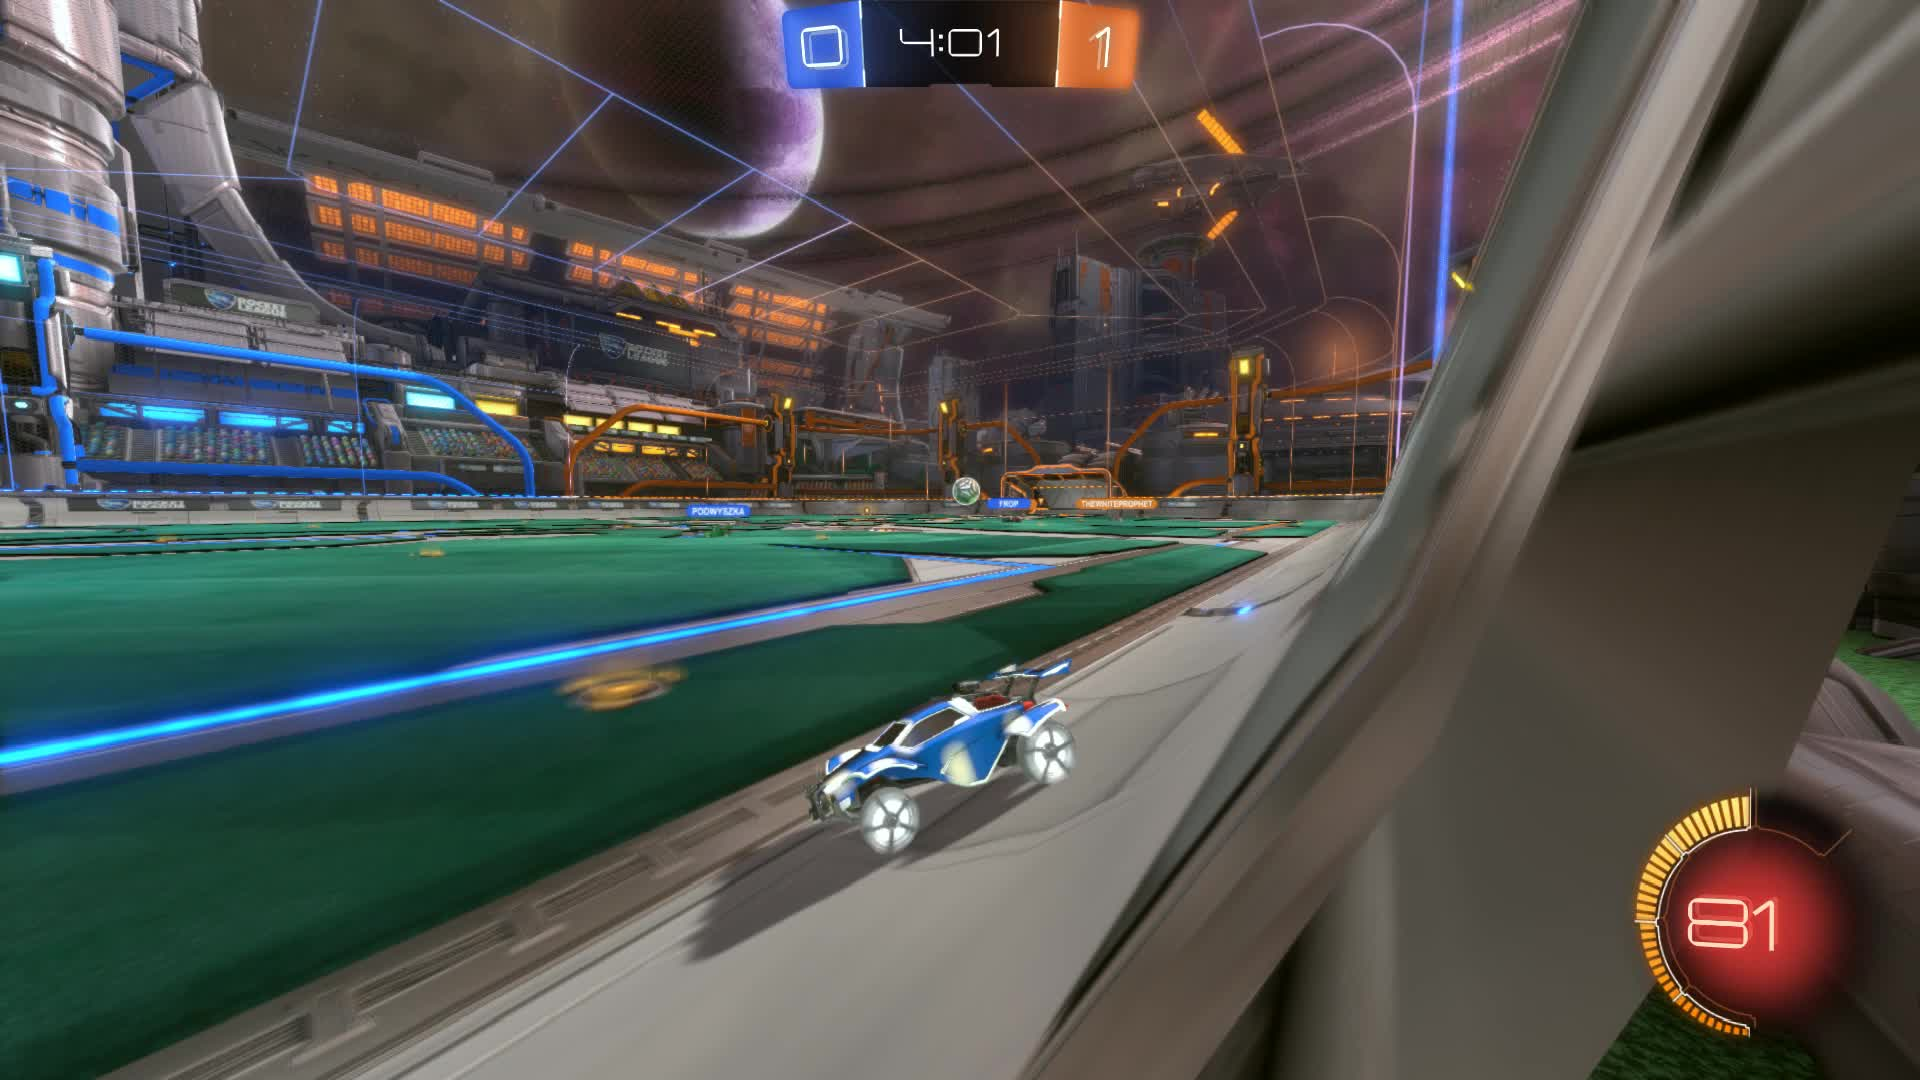 Gif Your Game, GifYourGame, Goal, Rocket League, RocketLeague, www.replays.watch is now Live, Goal 2: www.replays.watch is now Live GIFs